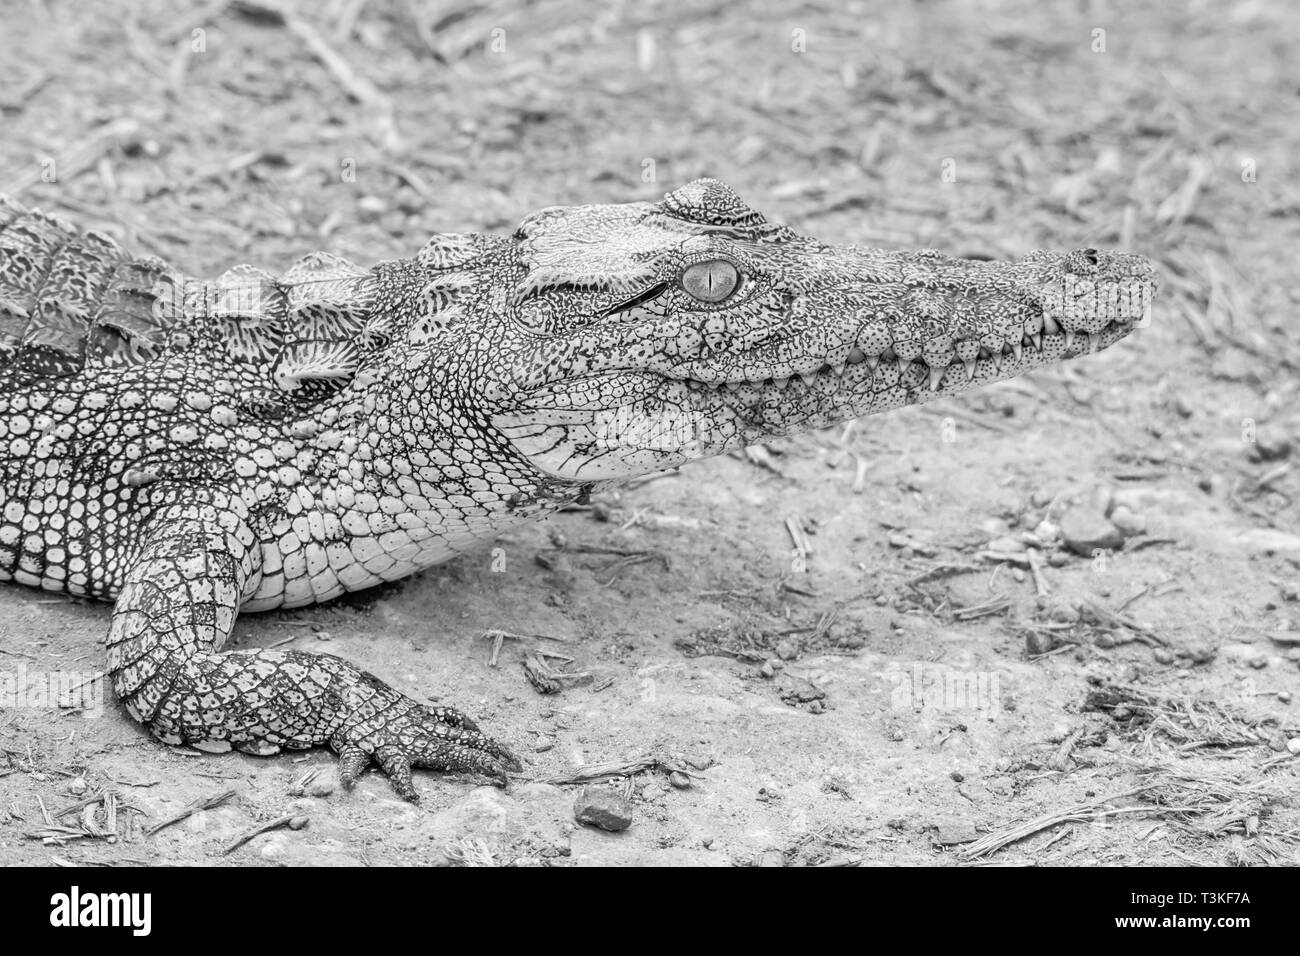 A juvenile Nile Crocodile resting on a riverbank in Southern African savanna - Stock Image